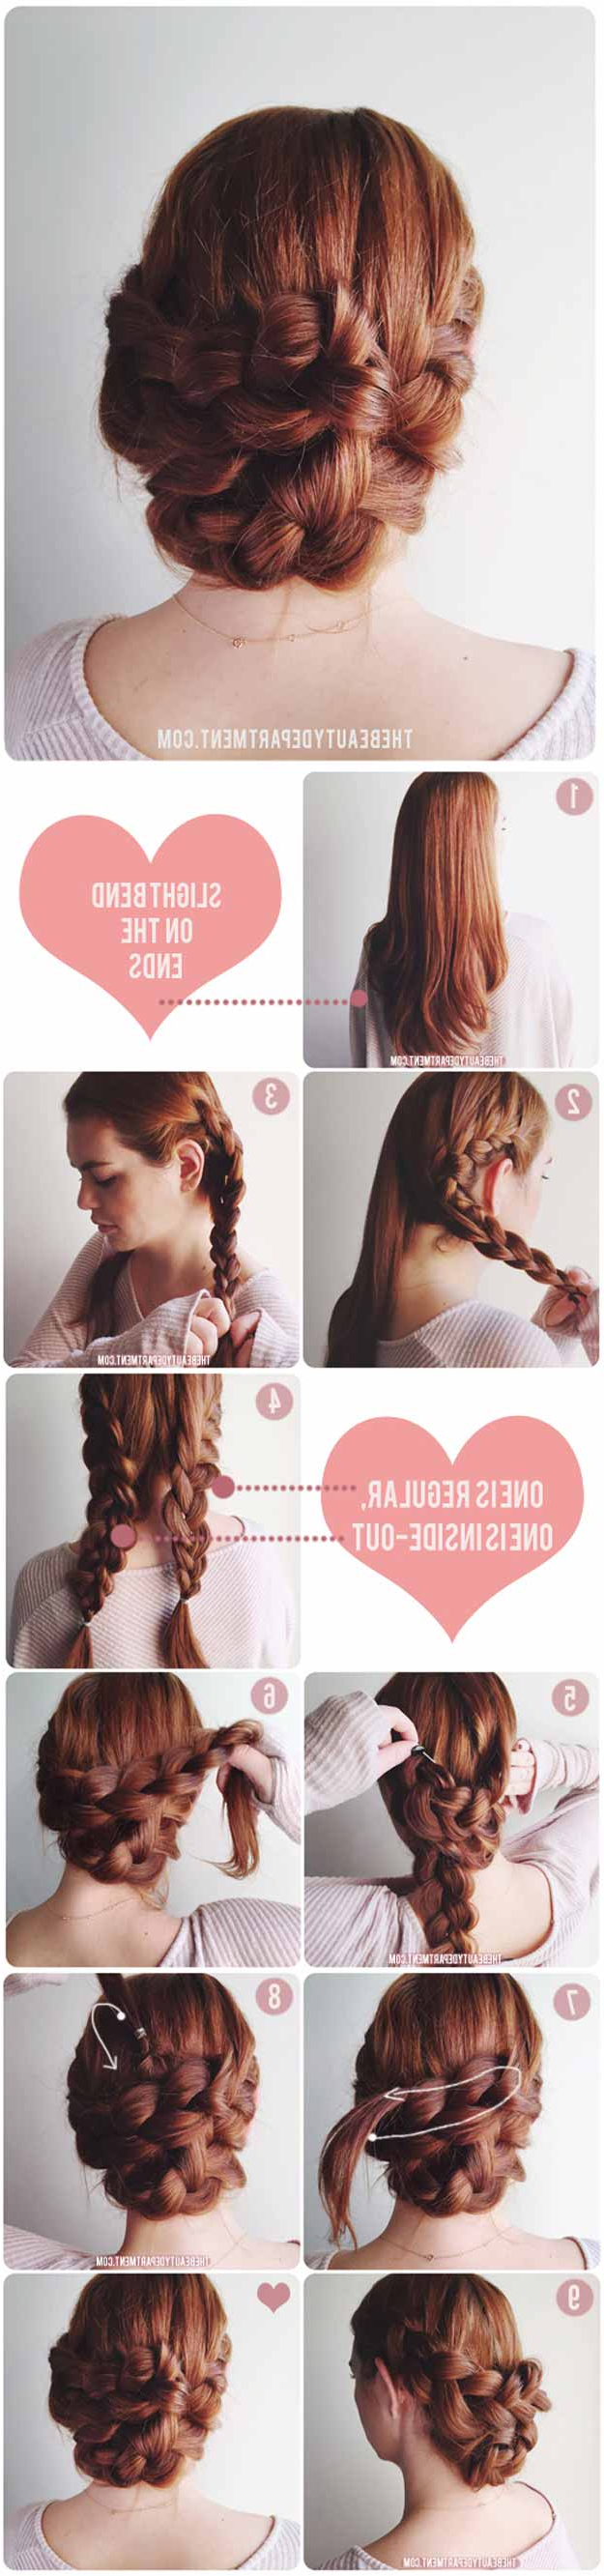 2017 Simple And Cute Wedding Hairstyles For Long Hair For 31 Wedding Hairstyles For Long Hair – The Goddess (Gallery 8 of 20)